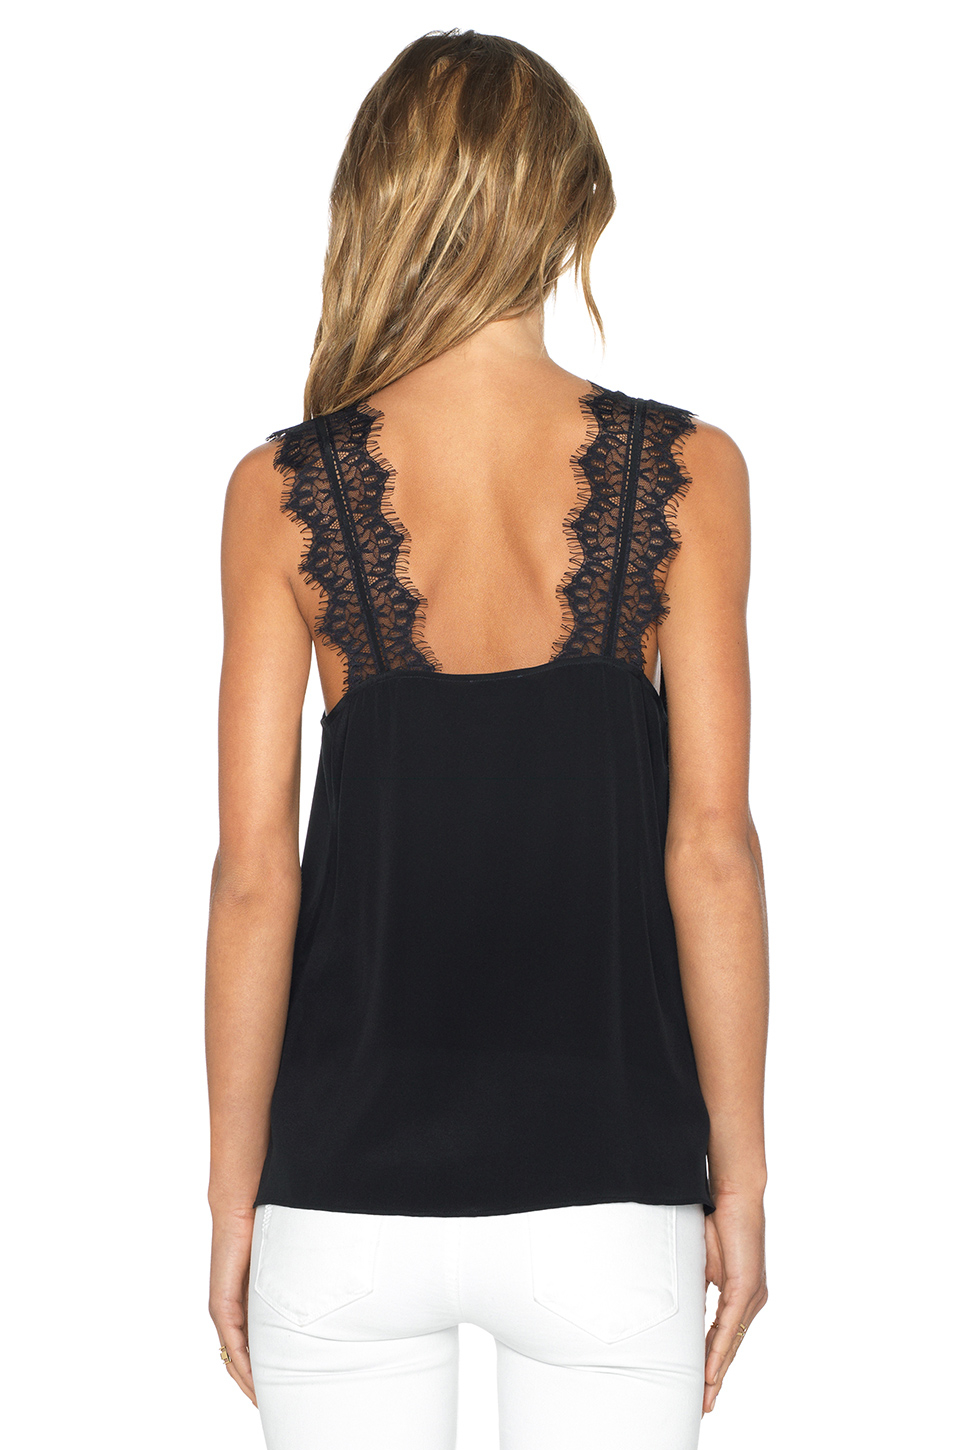 Lyst - Cami Nyc The Chelsea Cami in Black